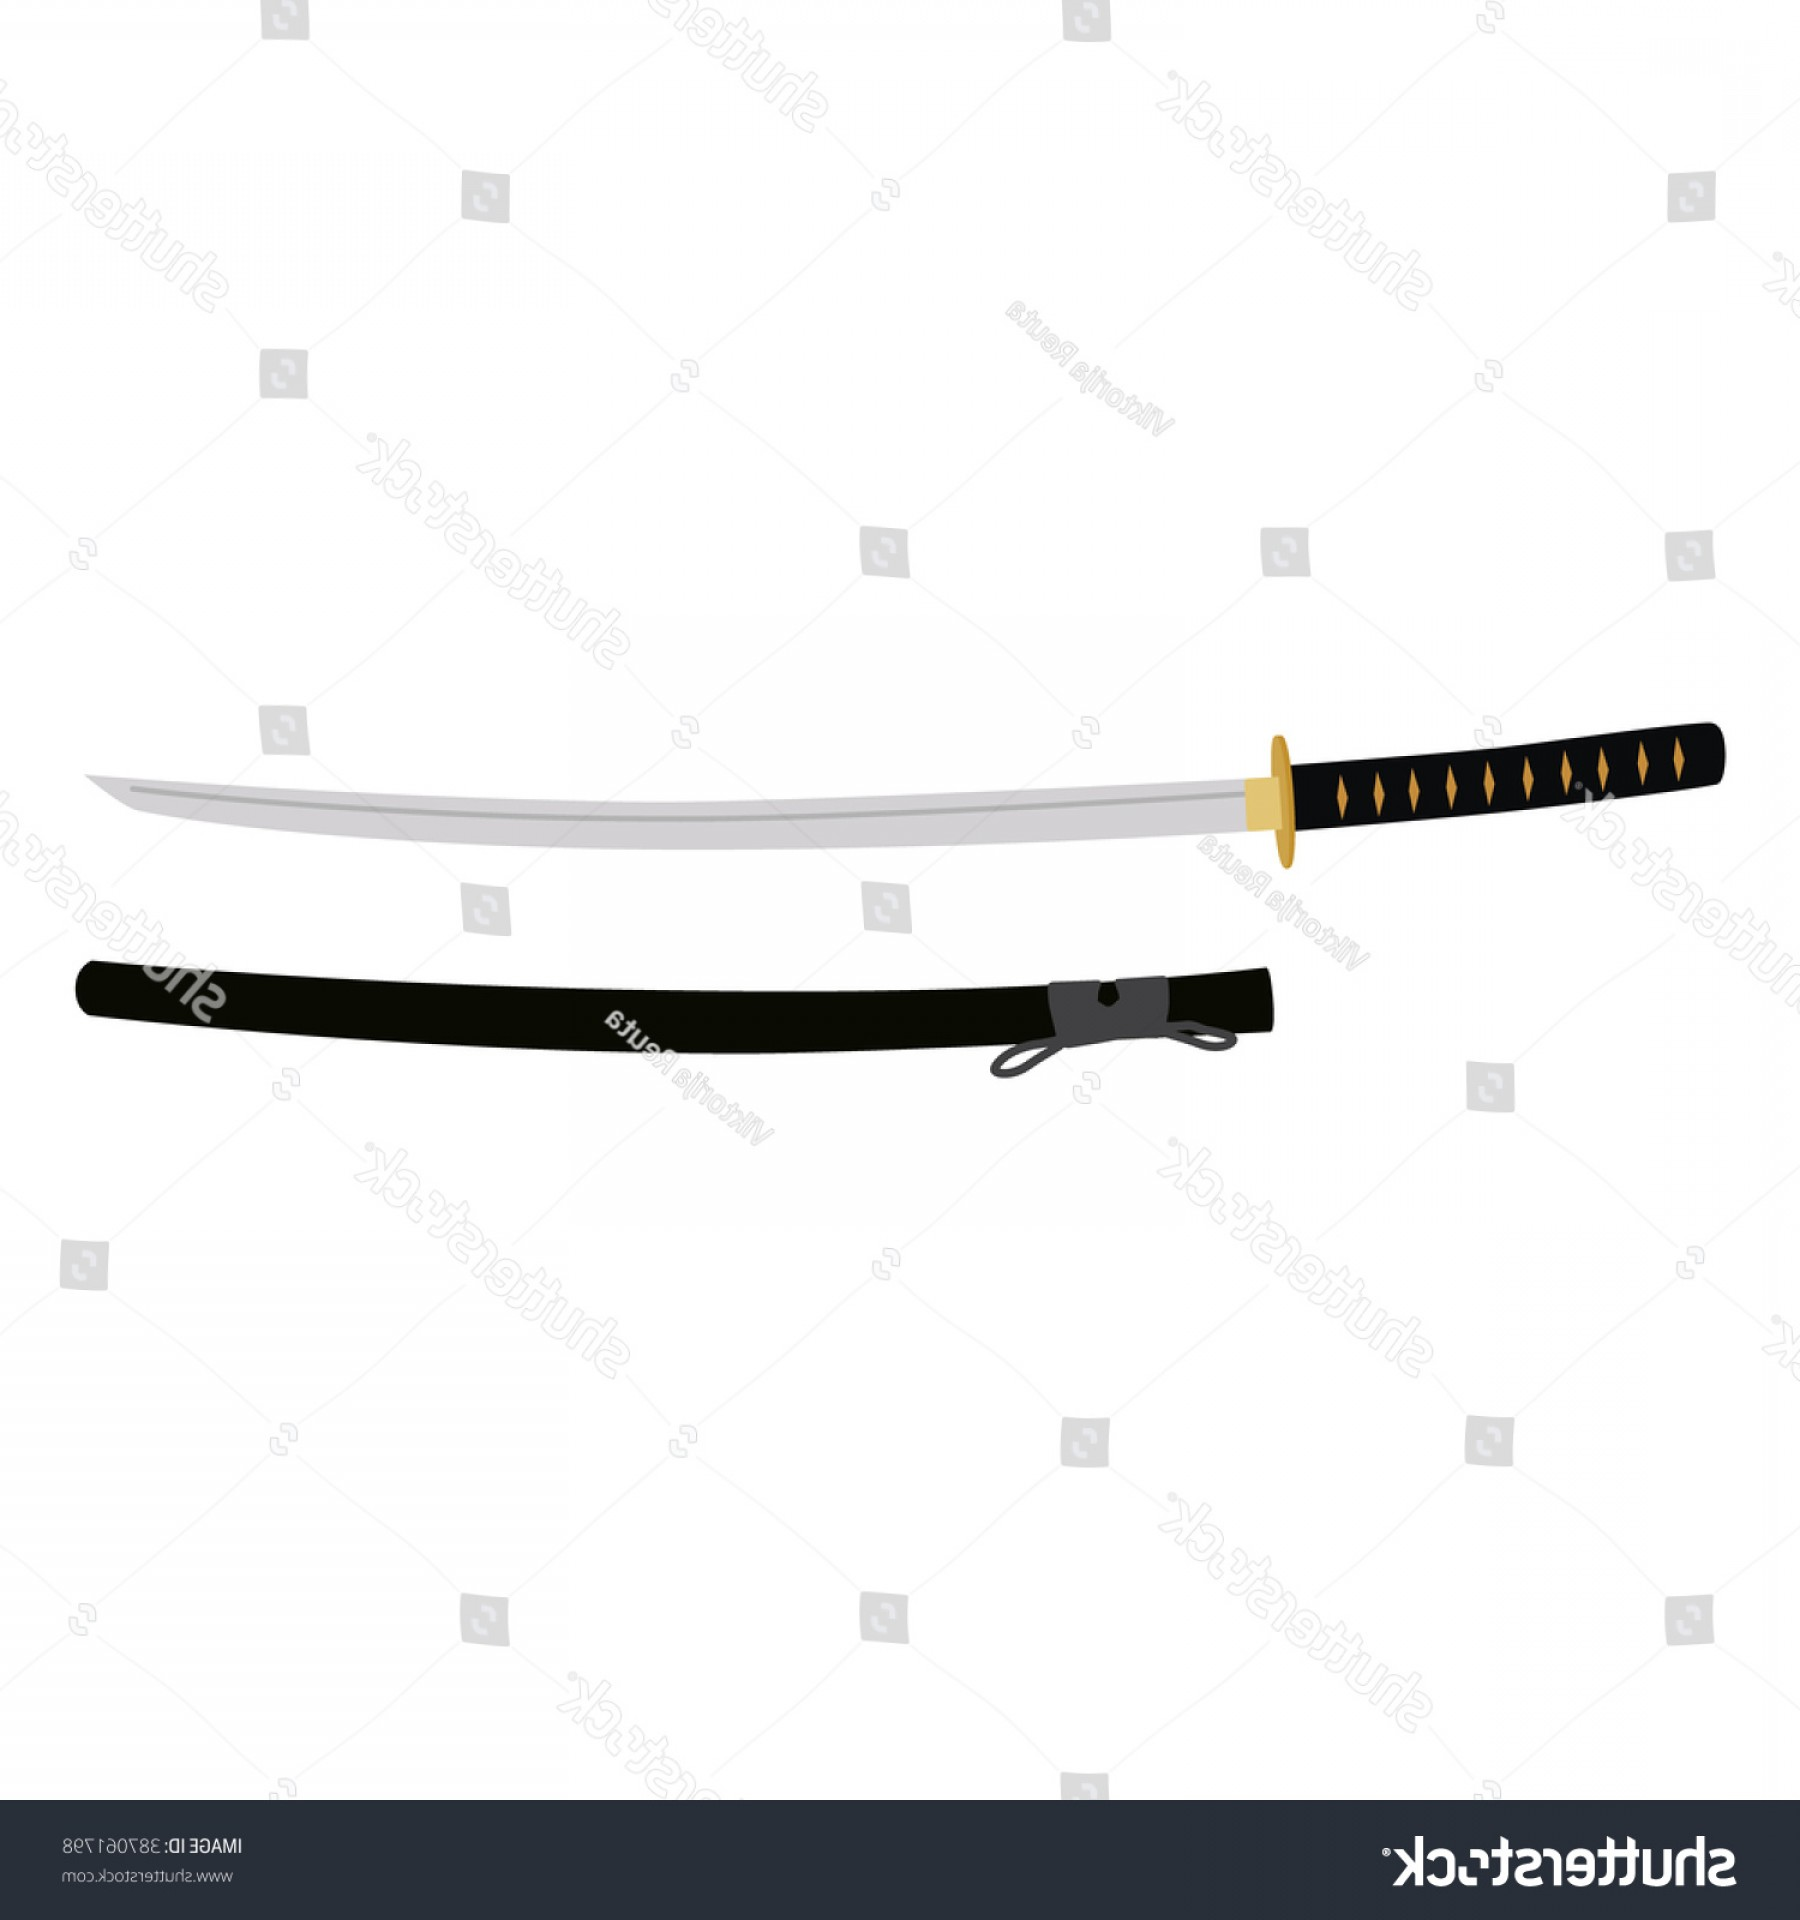 Samuri Sword Vector: Vector Illustration Japanese Katana Sword Scabbard